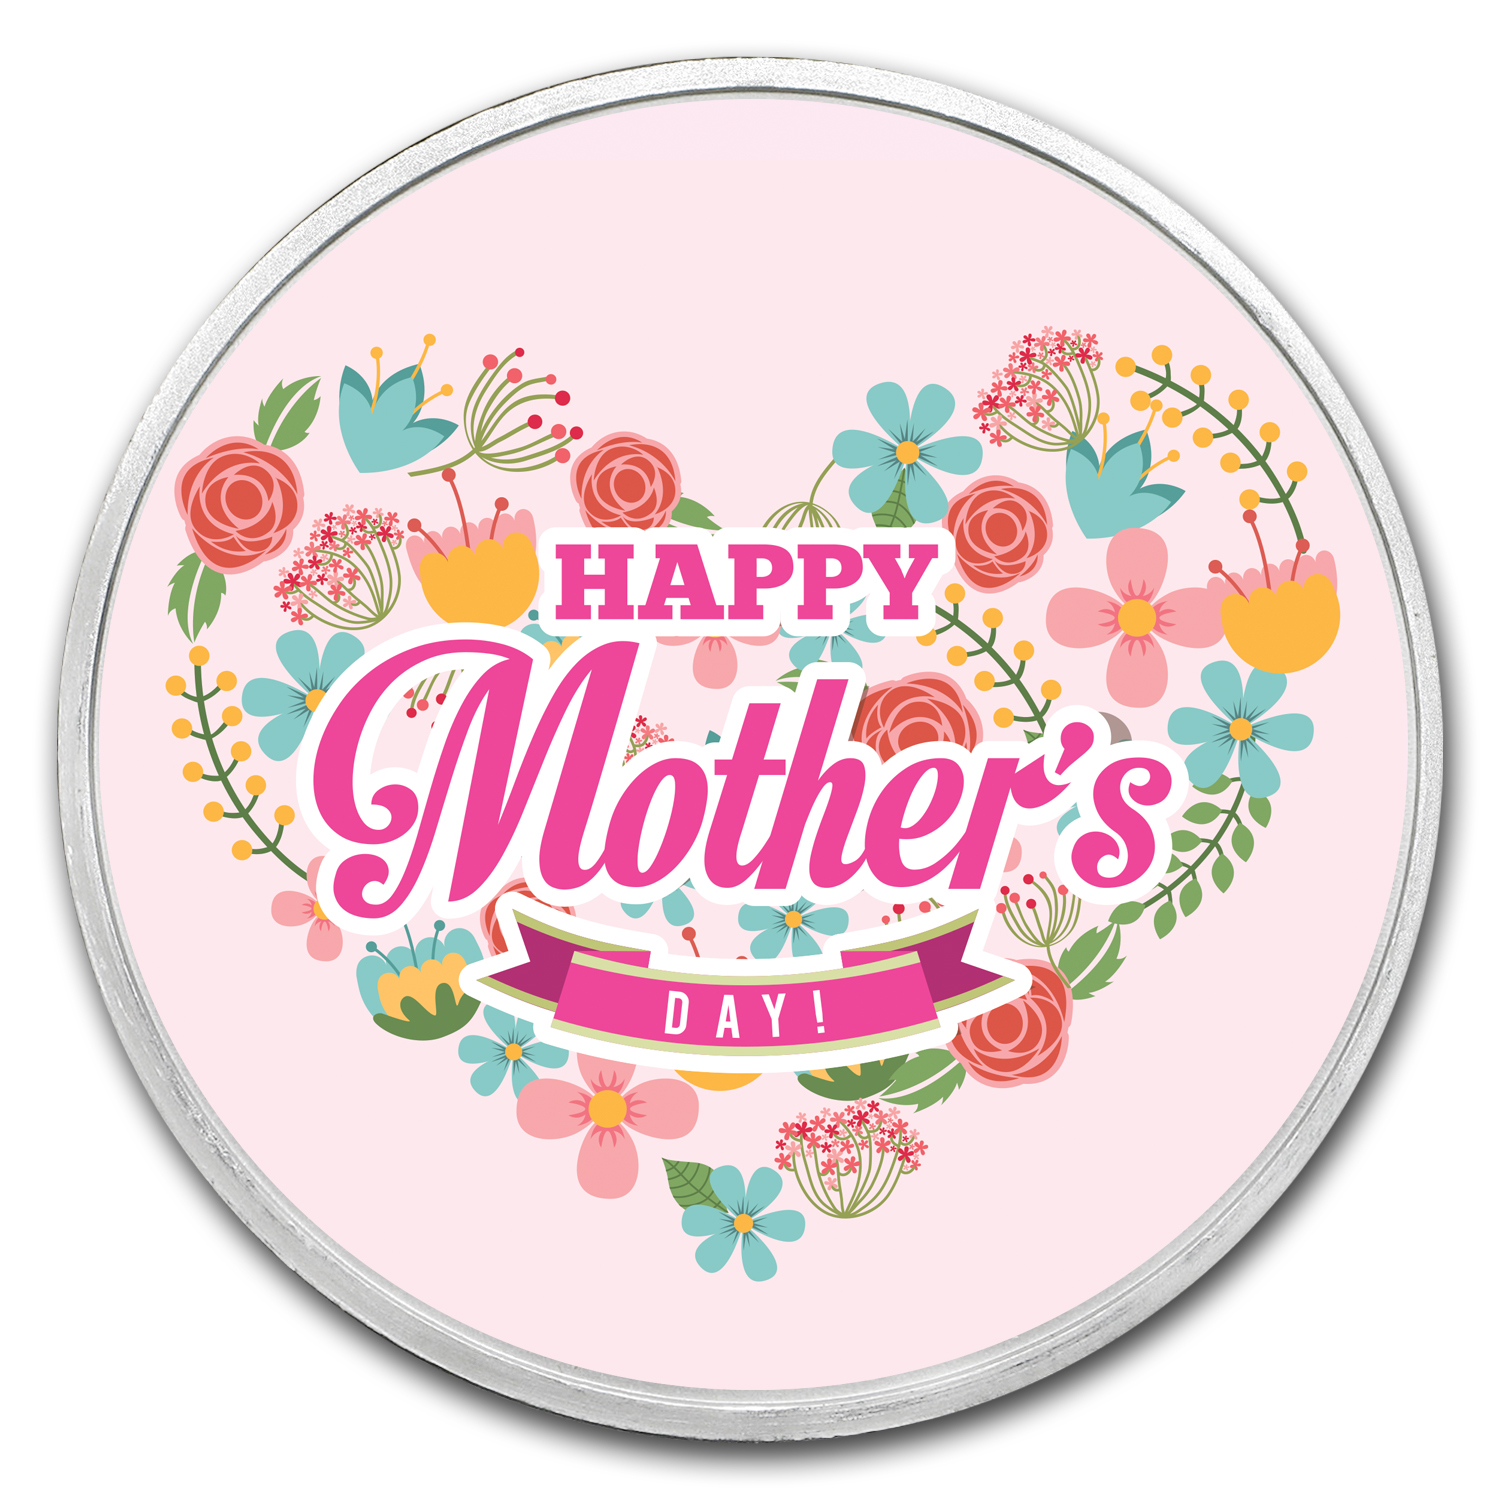 1 oz Silver Colorized Round - APMEX (Mother's Day - Love)